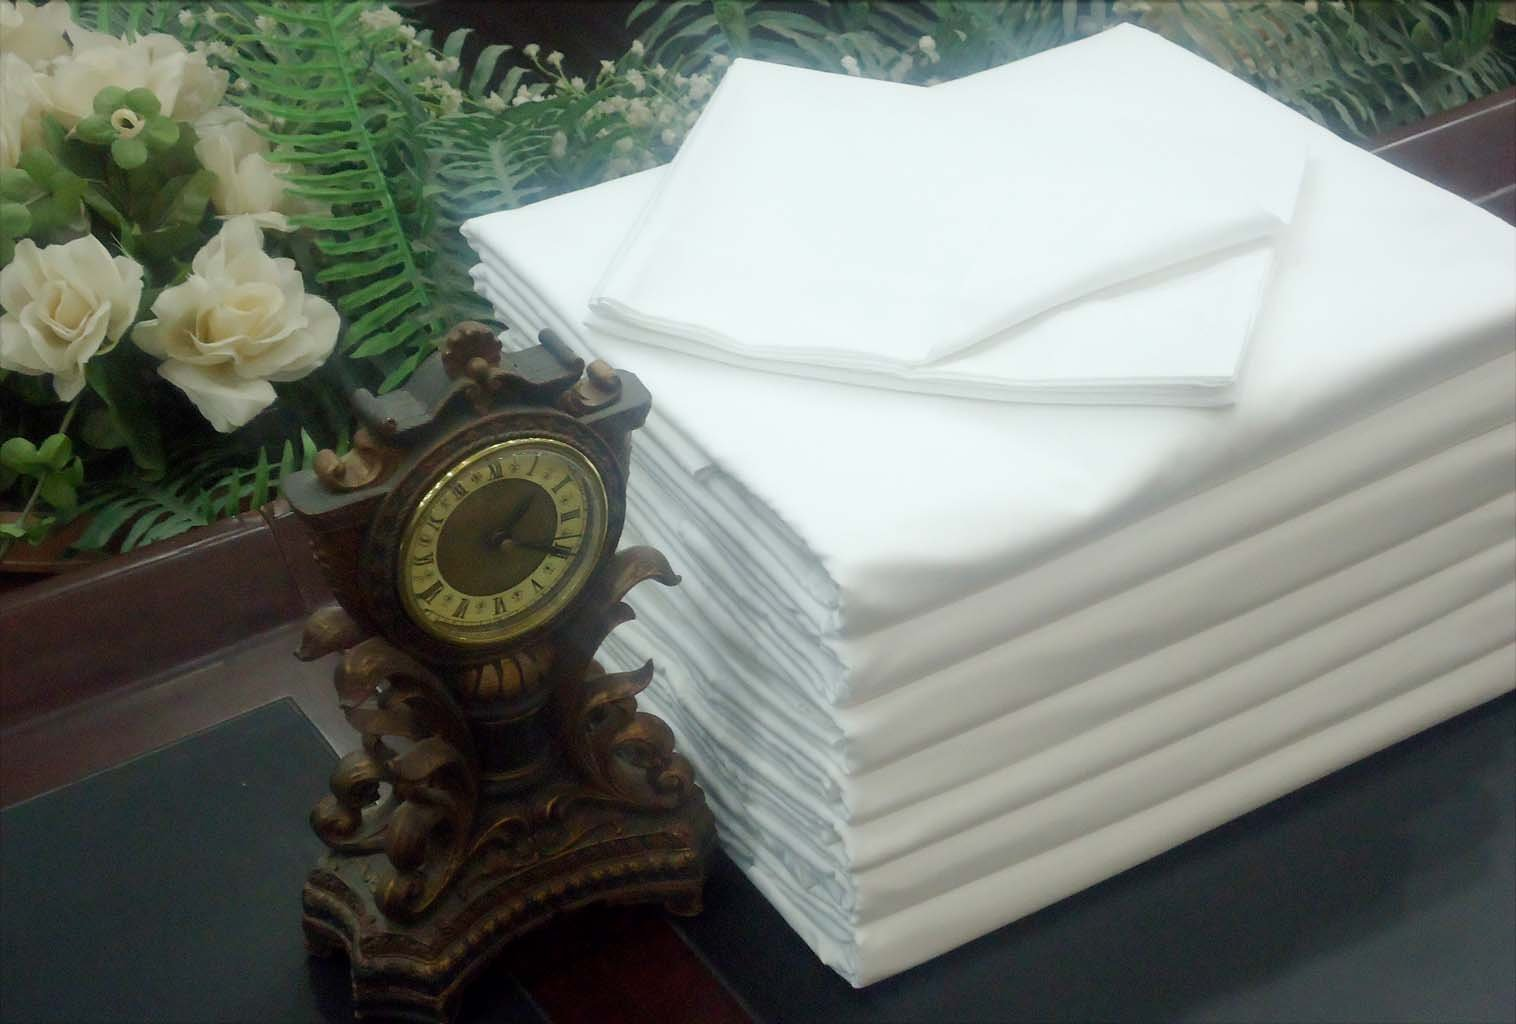 Lot of 12 New White King XL Flat Bed Sheet T-180 Percale Hotel Linen (Available in Bulk/Dozens)